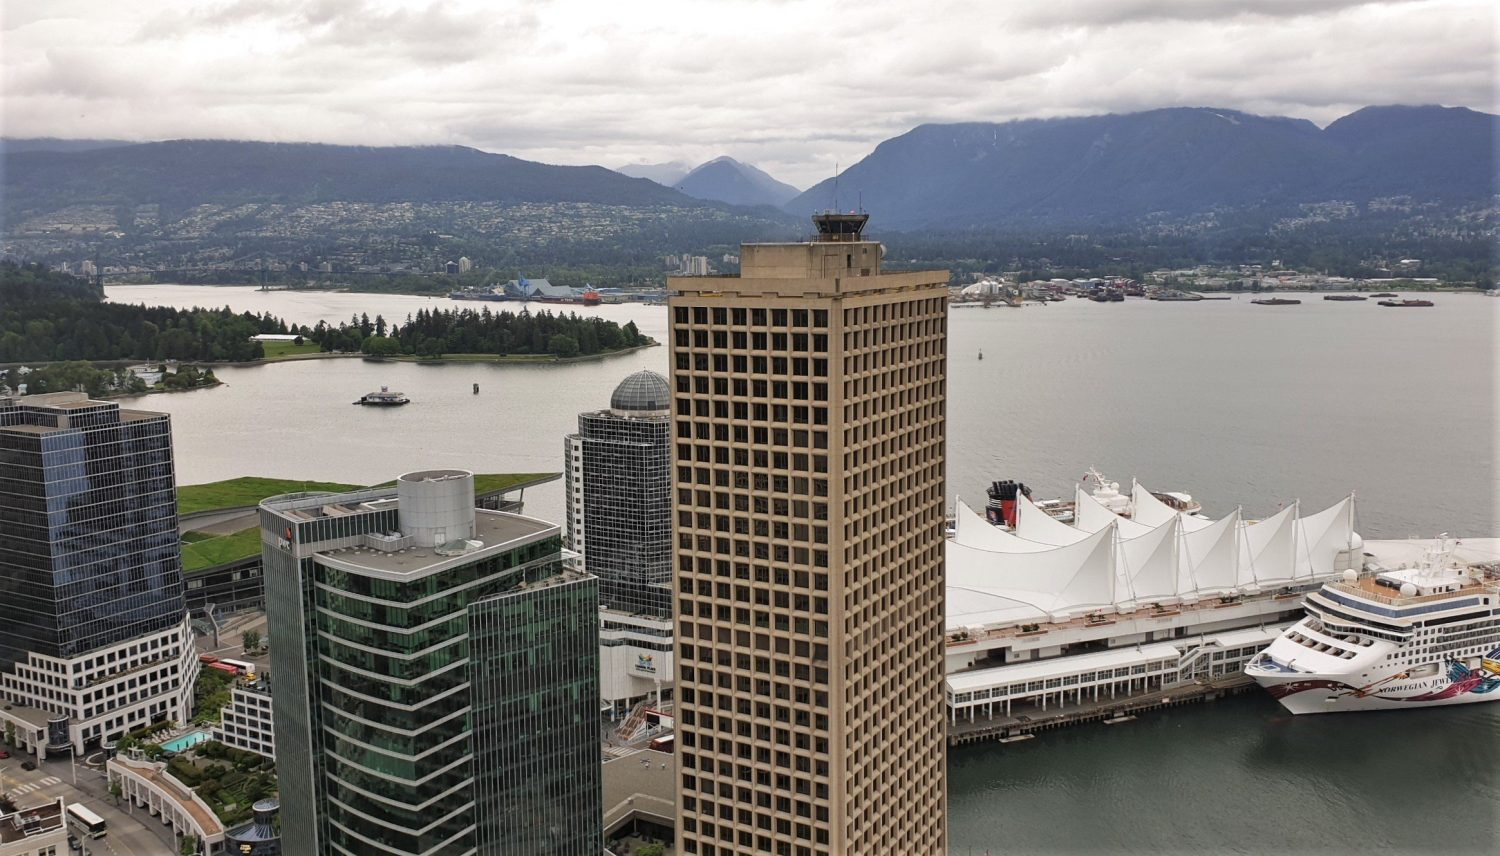 Vancouver Lookout per me